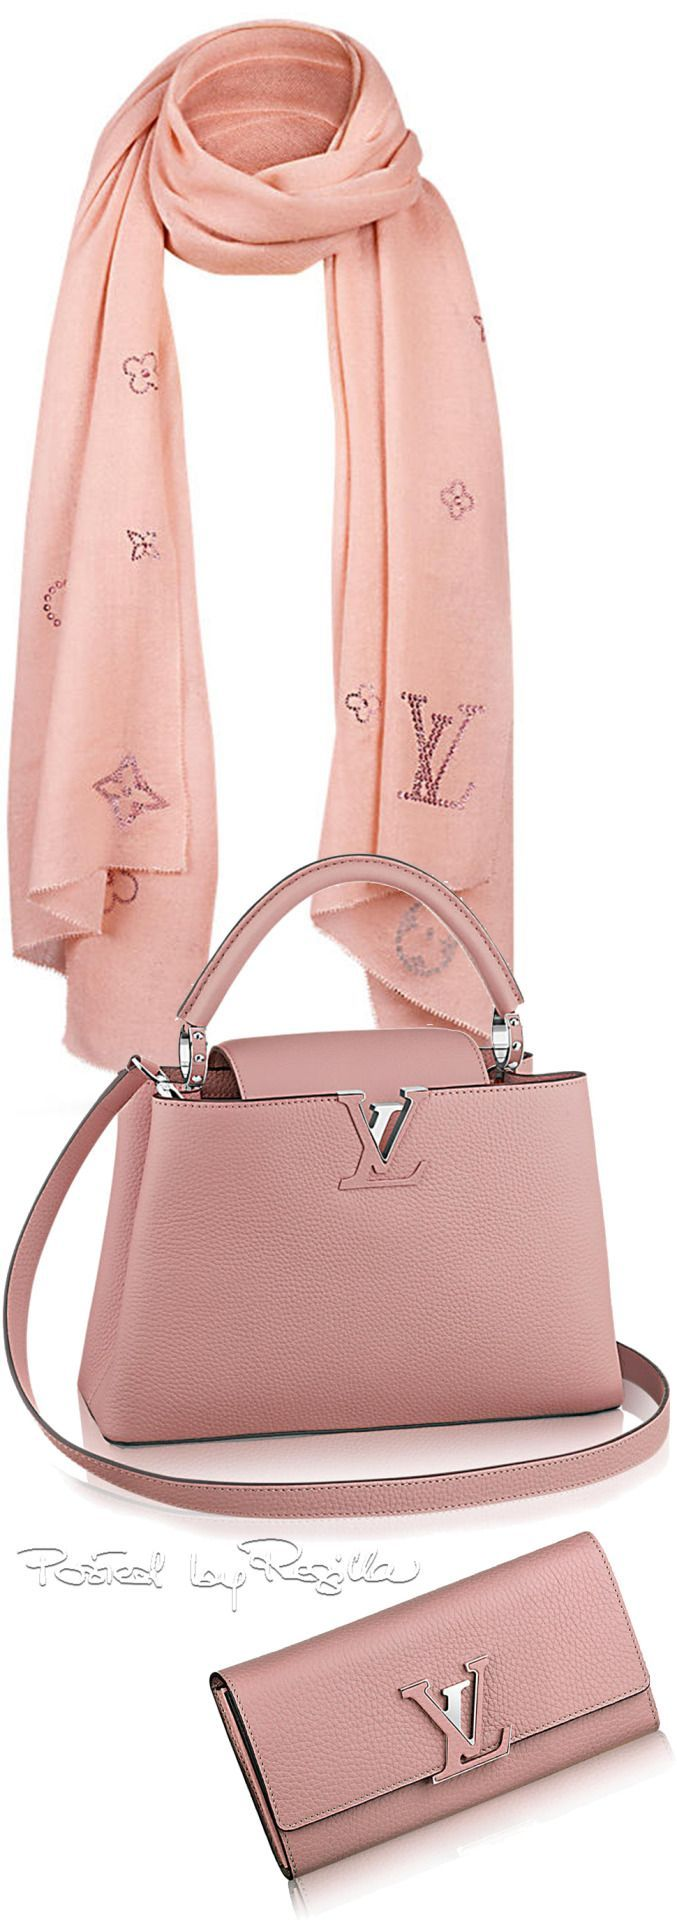 Regilla ⚜ Louis Vuitton: More https://twitter.com/gogomgsingi1/status/903784505244127236